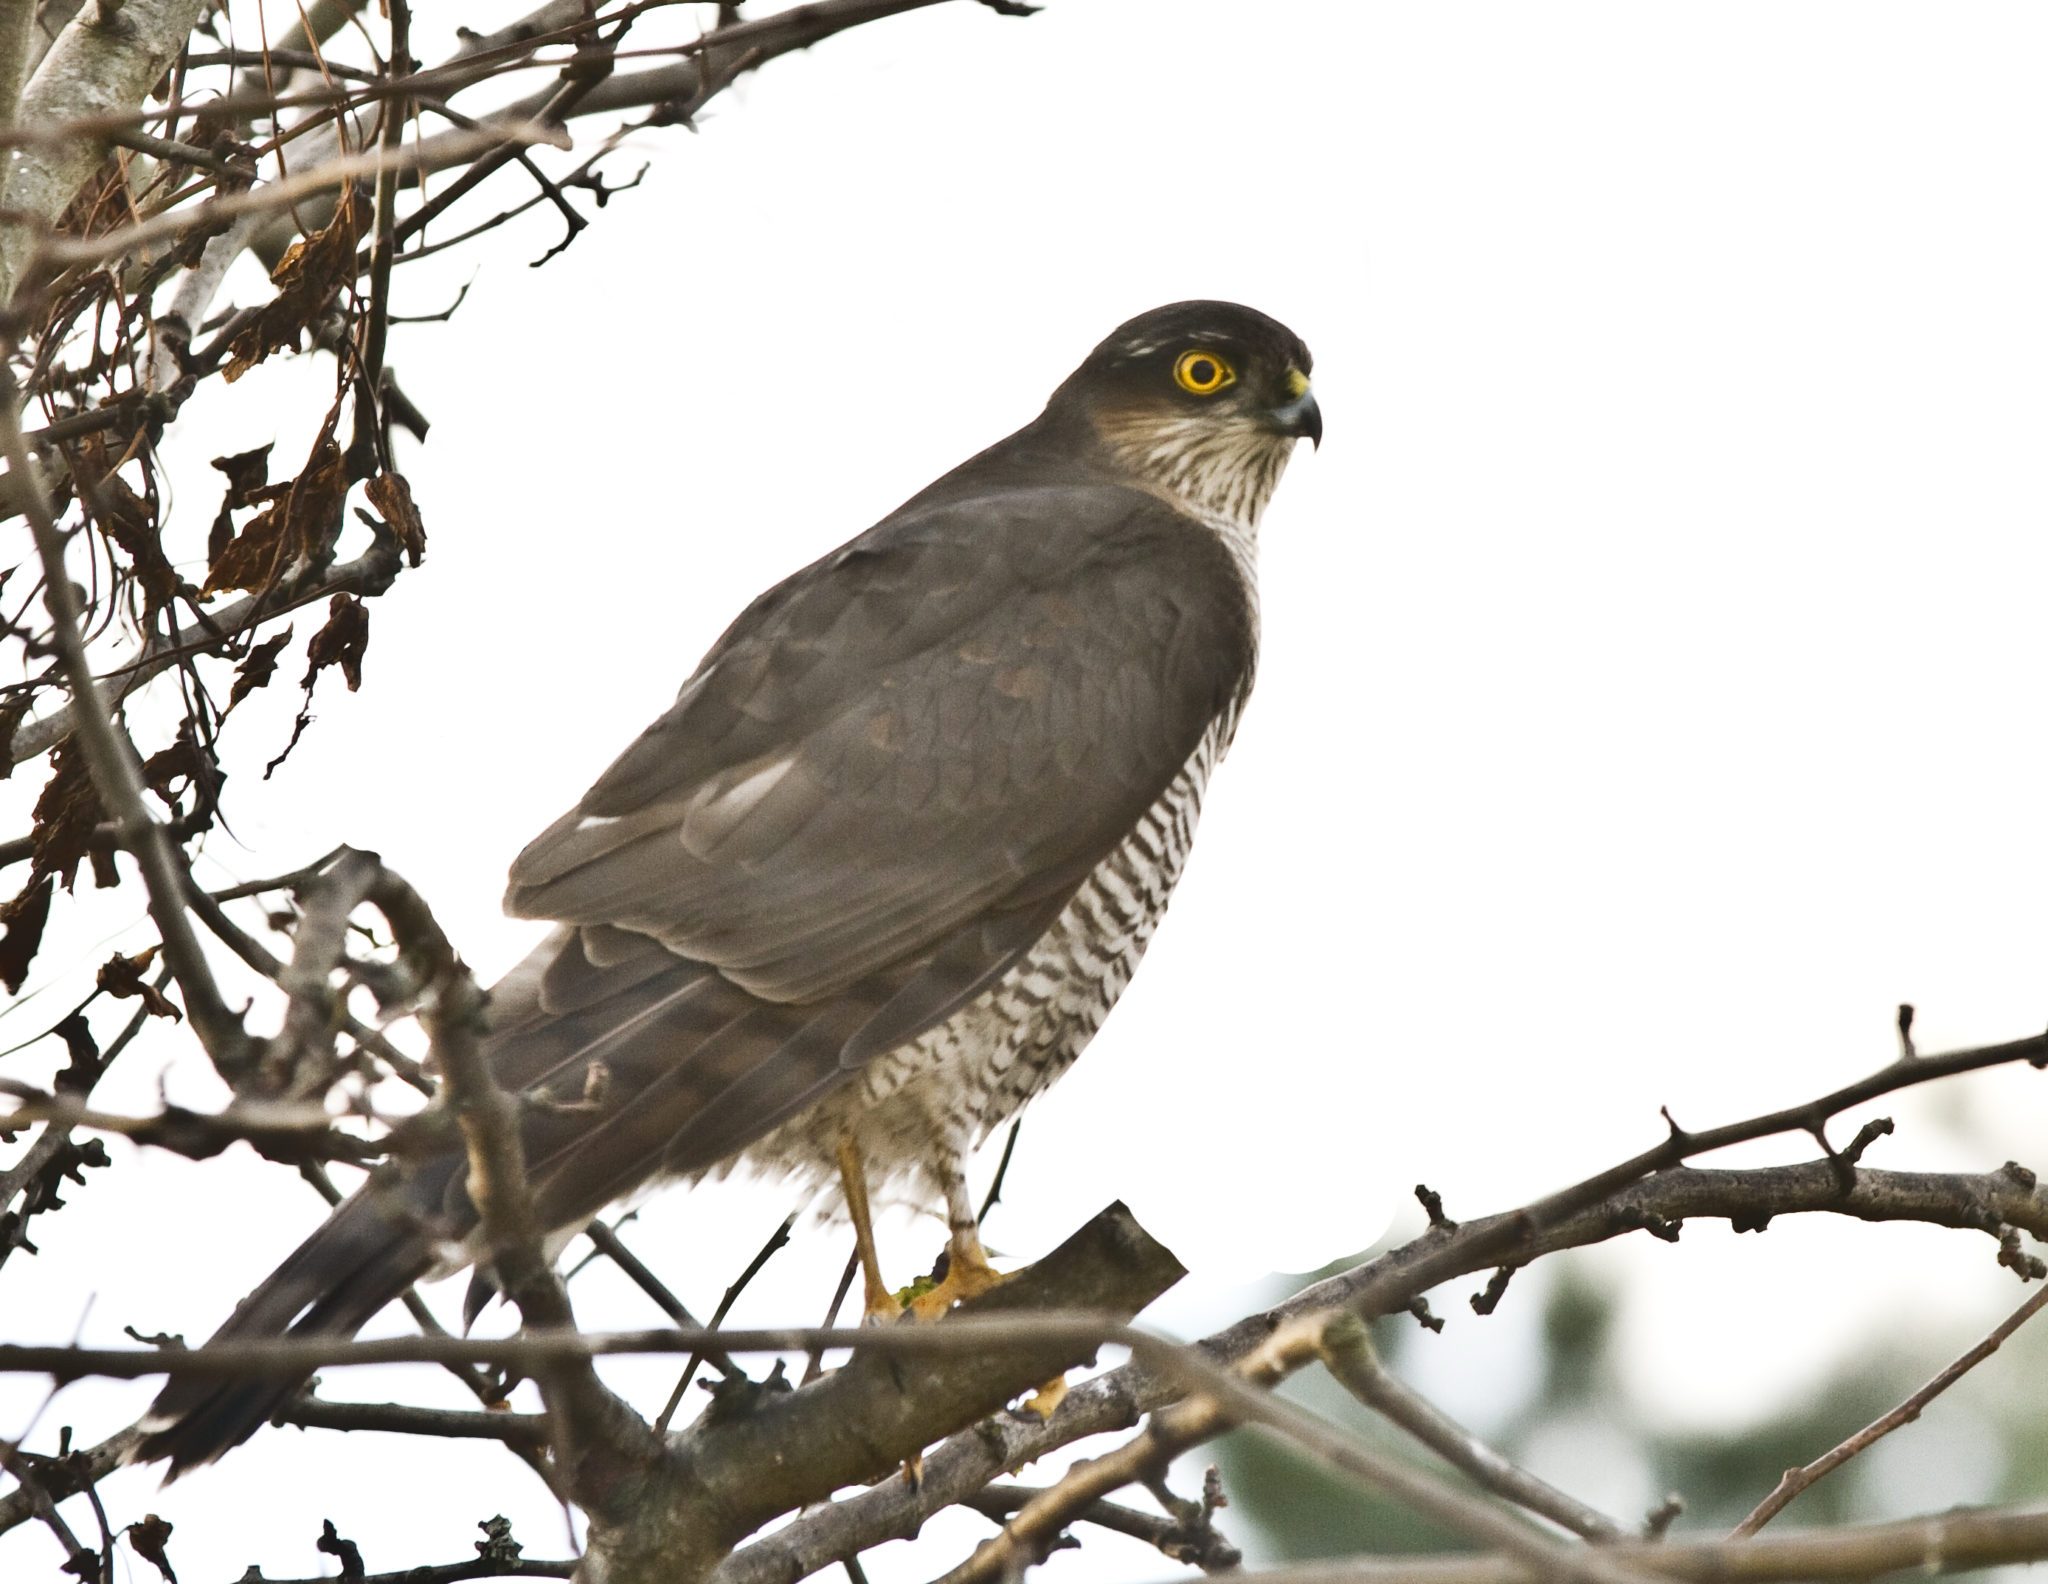 Identifying sparrowhawks part 1